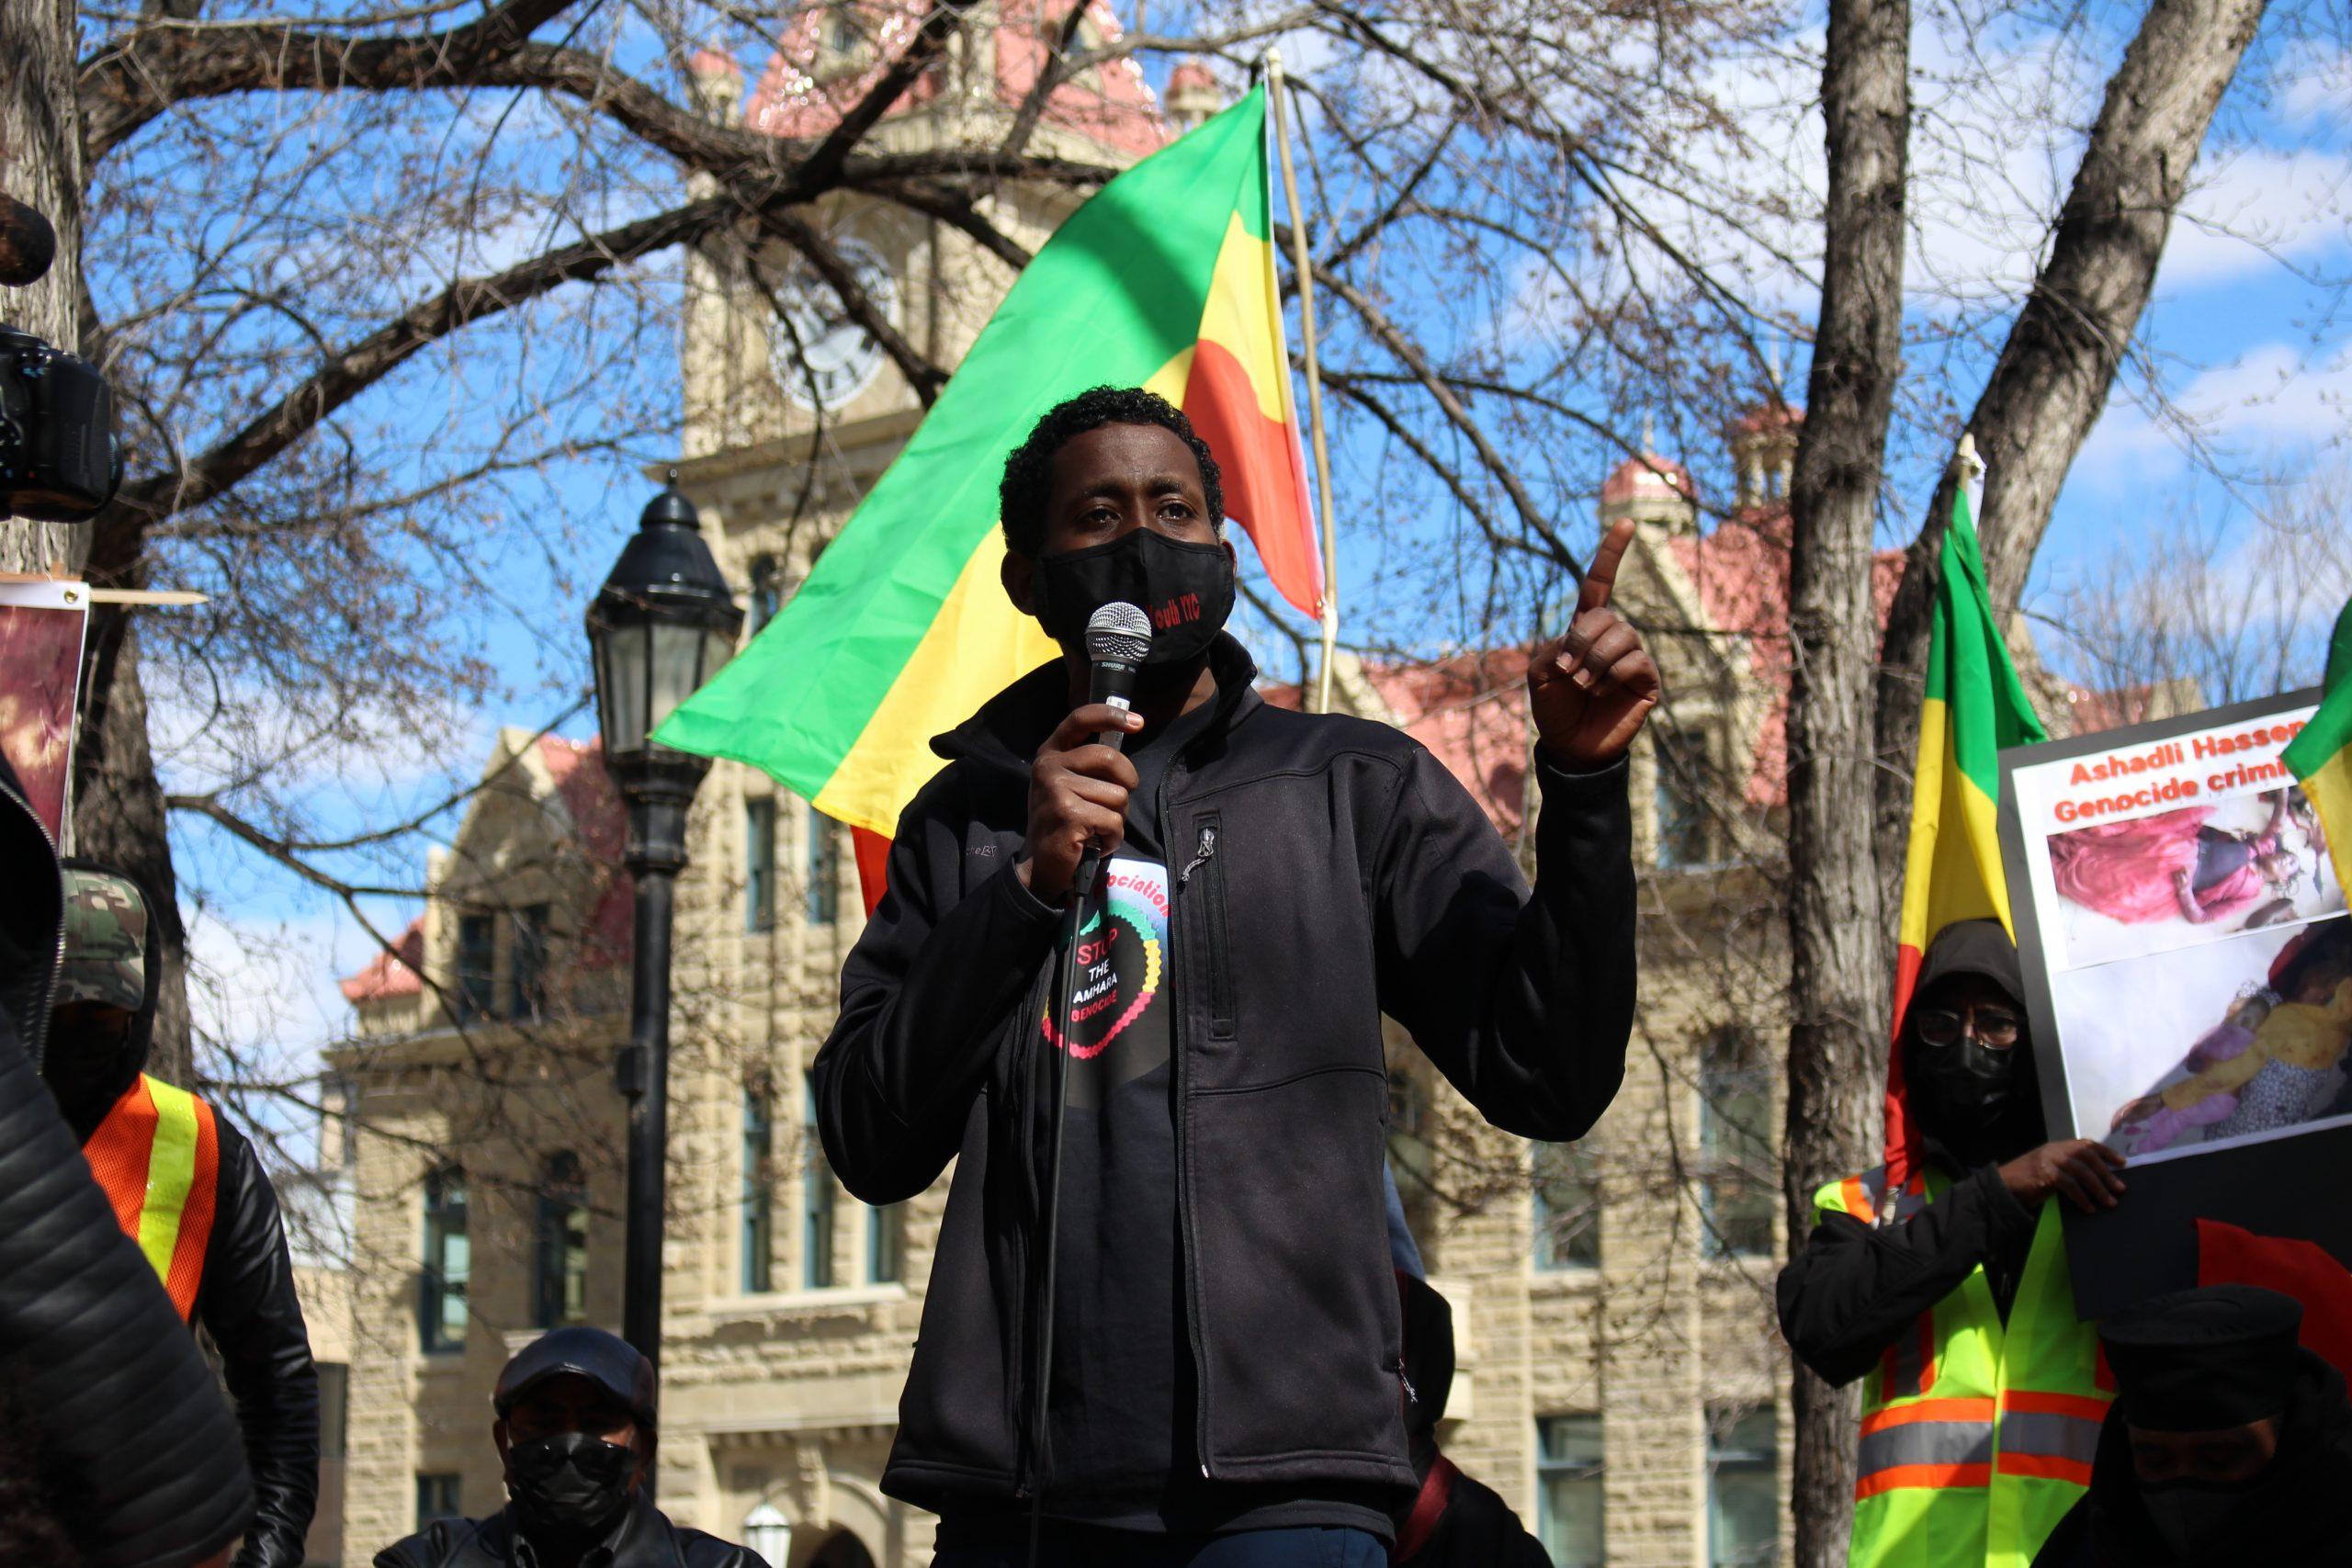 Elias Haile speaks in Amharic to a group of protestors in Olympic Plaza in Calgary on April 11, 2021. Haile is regularly active within the Amhara community, and he speaks out against the genocide of the Amhara people in Ethiopia. According to the Ethiopian Human Rights Council (EHRCO), there have been 1100 deaths due to the massacre from November 2020 till April 2021. (Photo by Alejandro Melgar/SAIT)